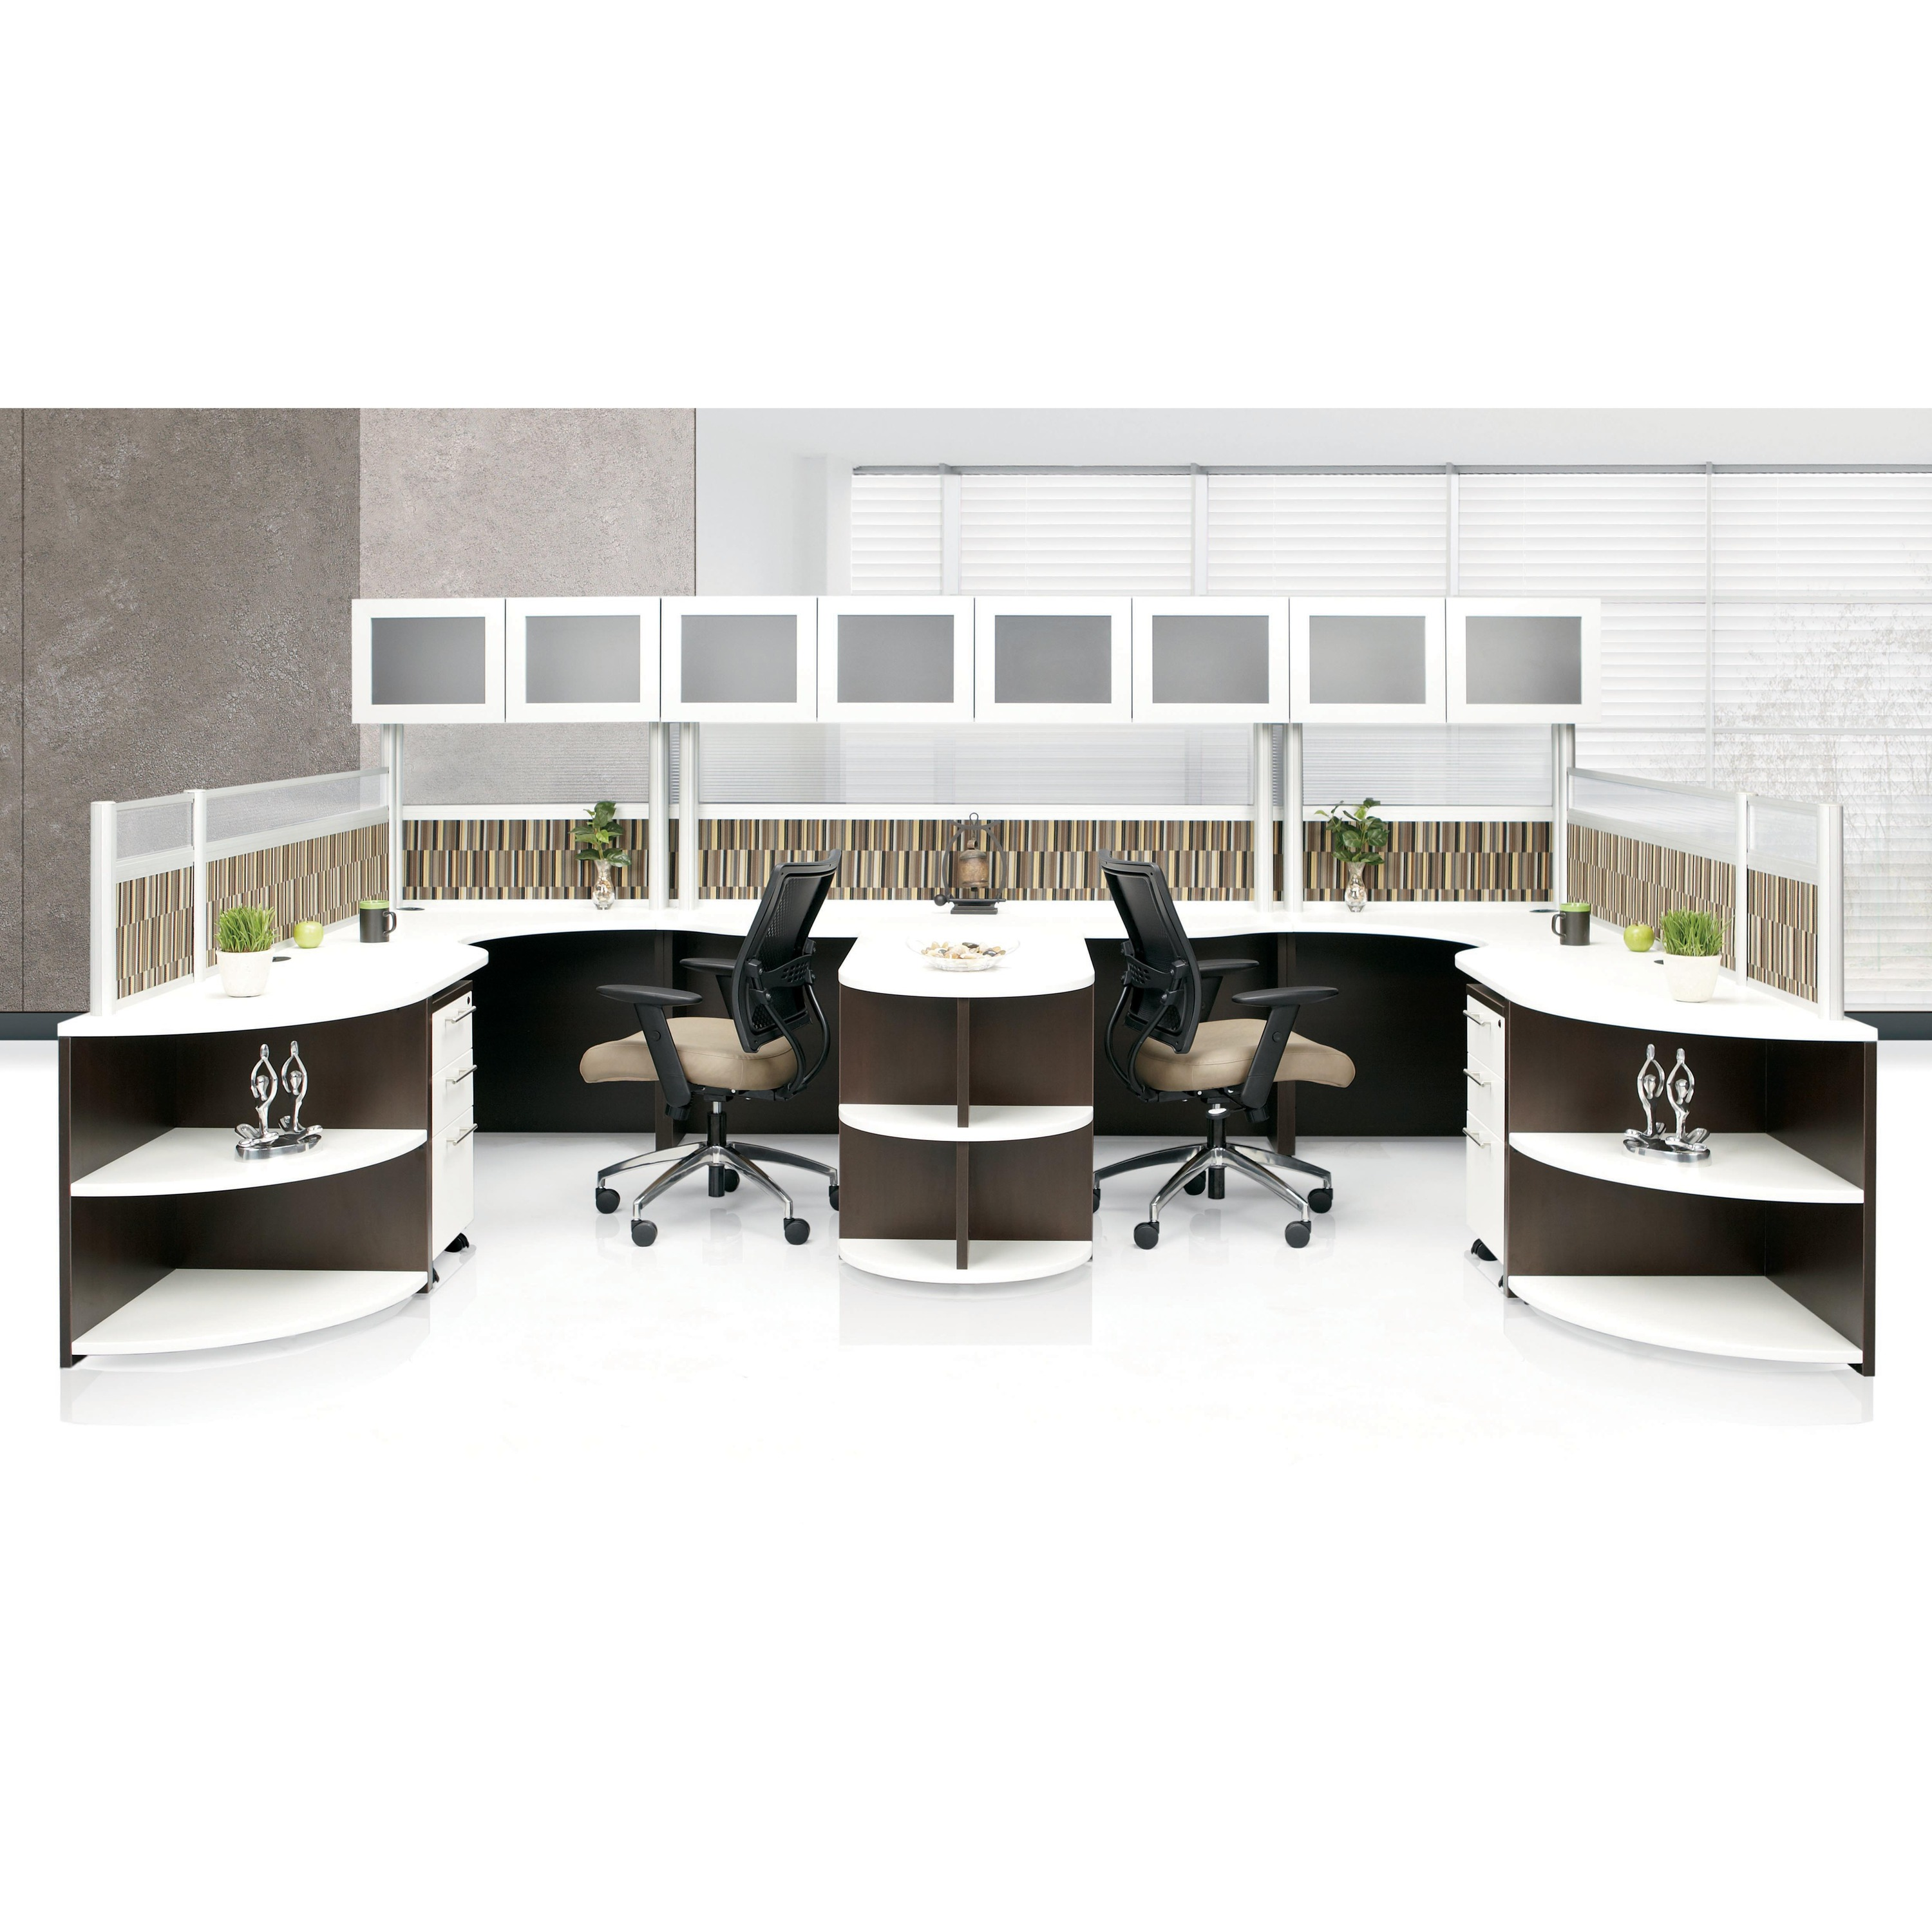 links contract furniture workstation lcfps724twcw